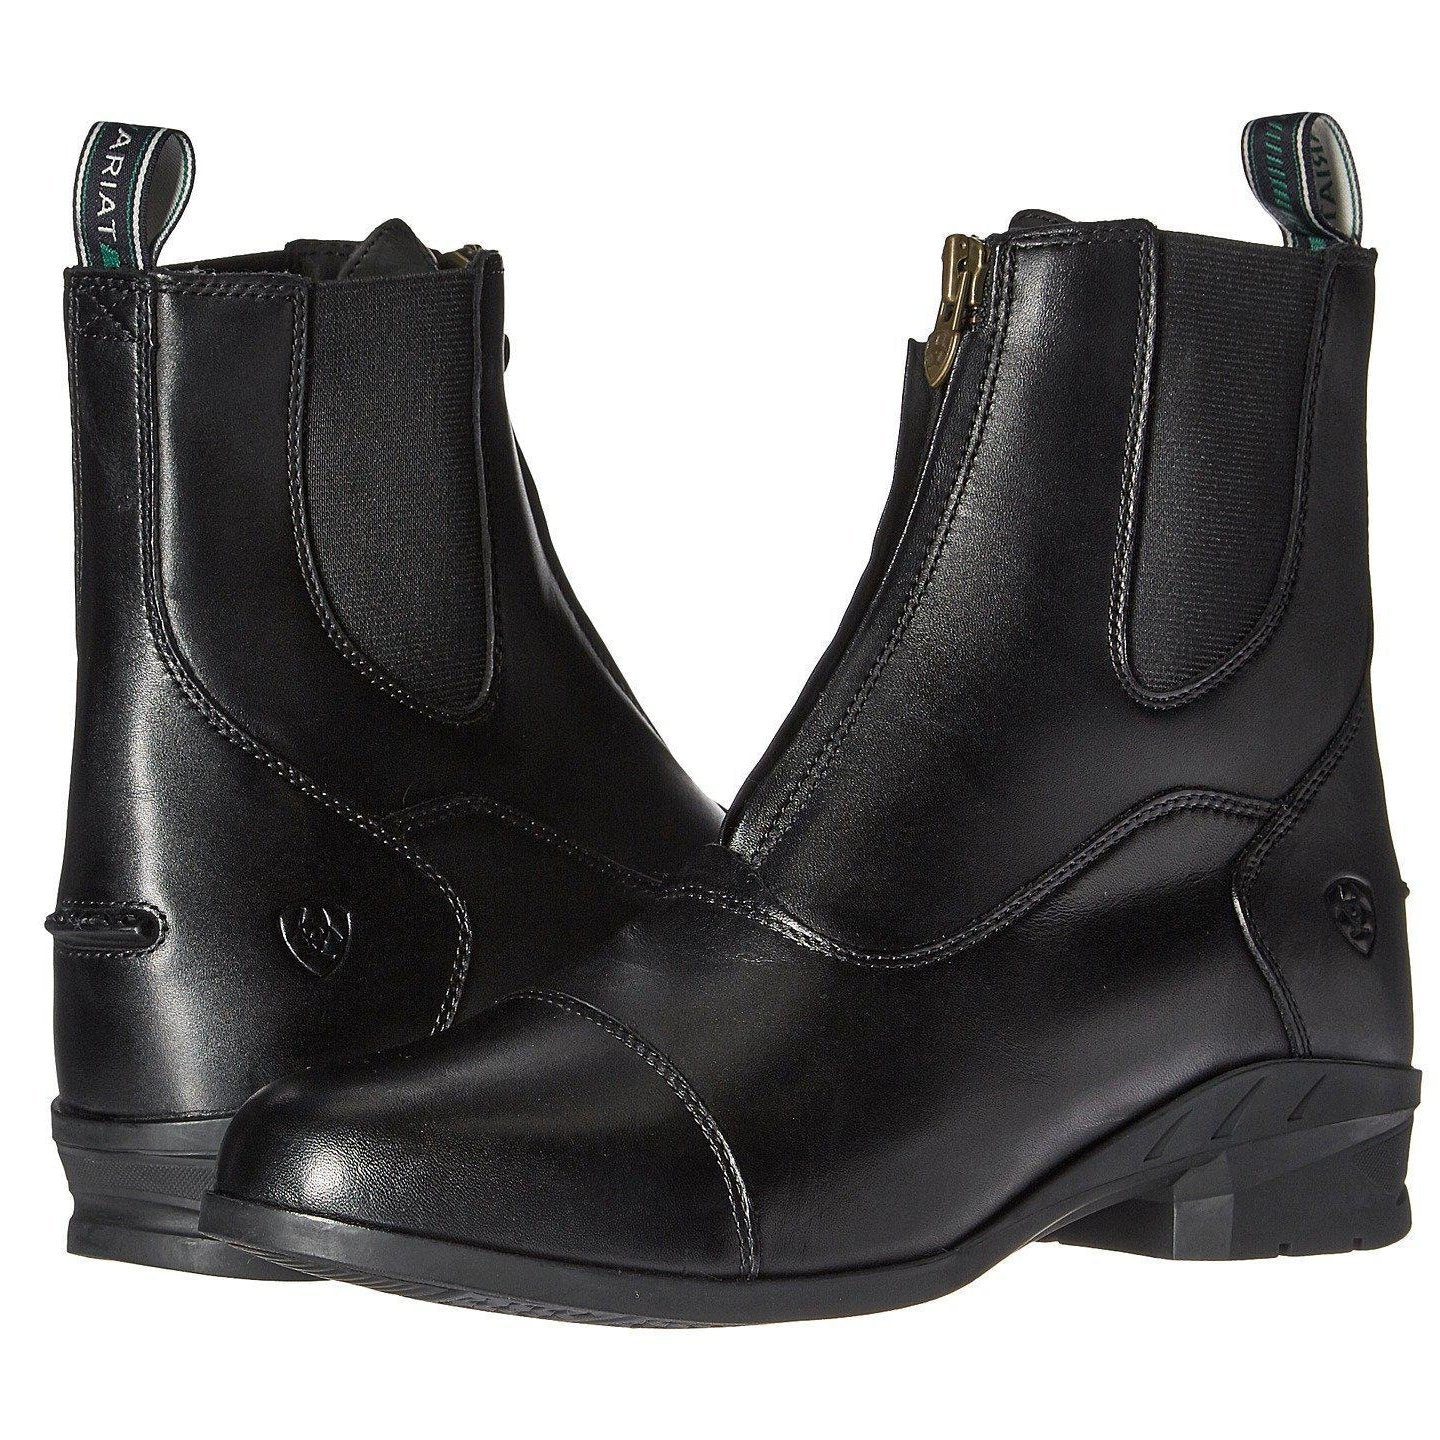 Ariat Heritage Iv Zip H20 Women's Ankle Boots